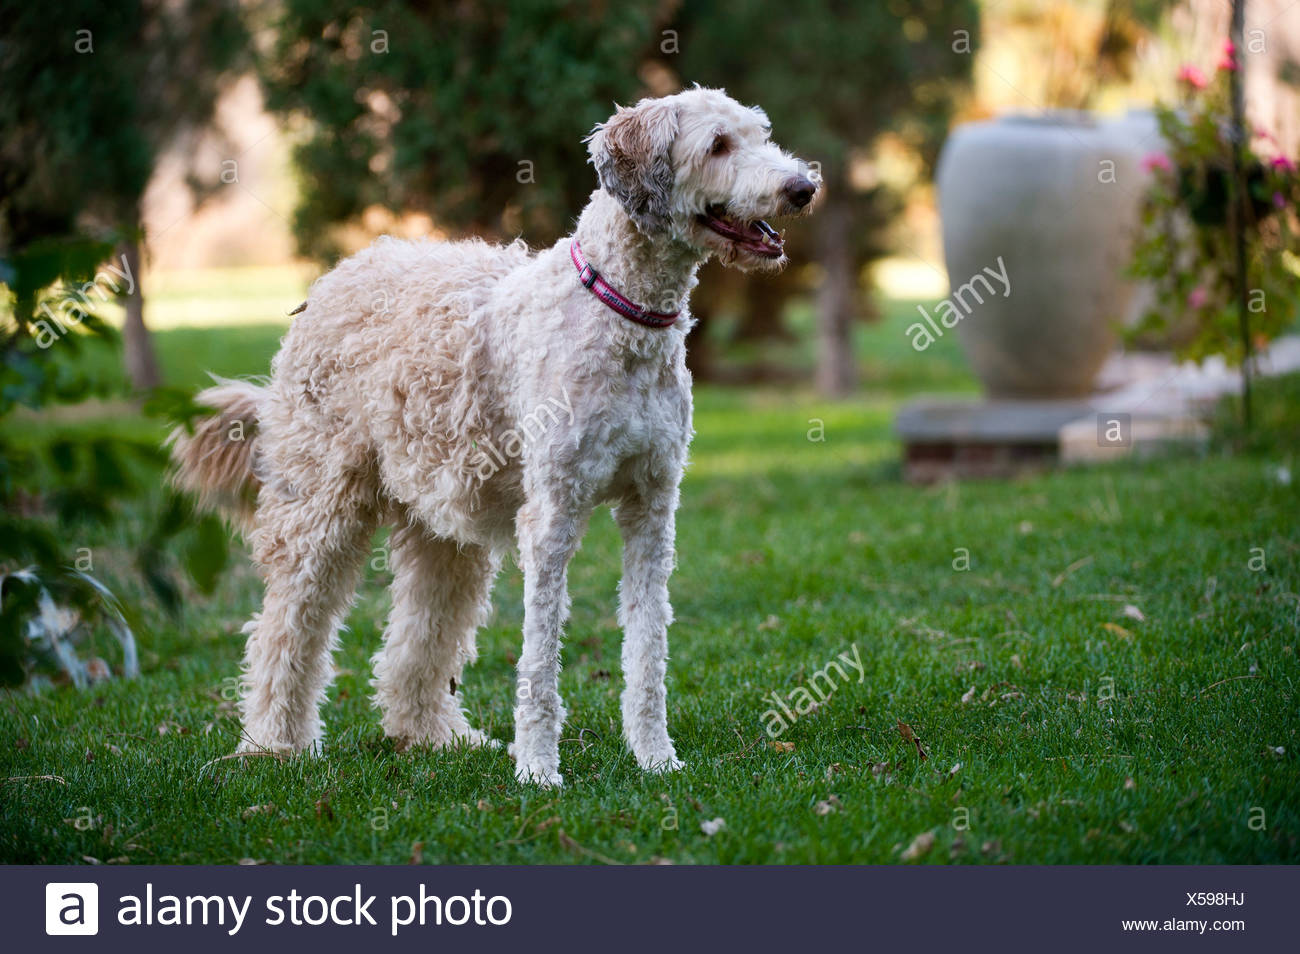 A family pet, half shaved, in Lincoln, Nebraska. - Stock Image